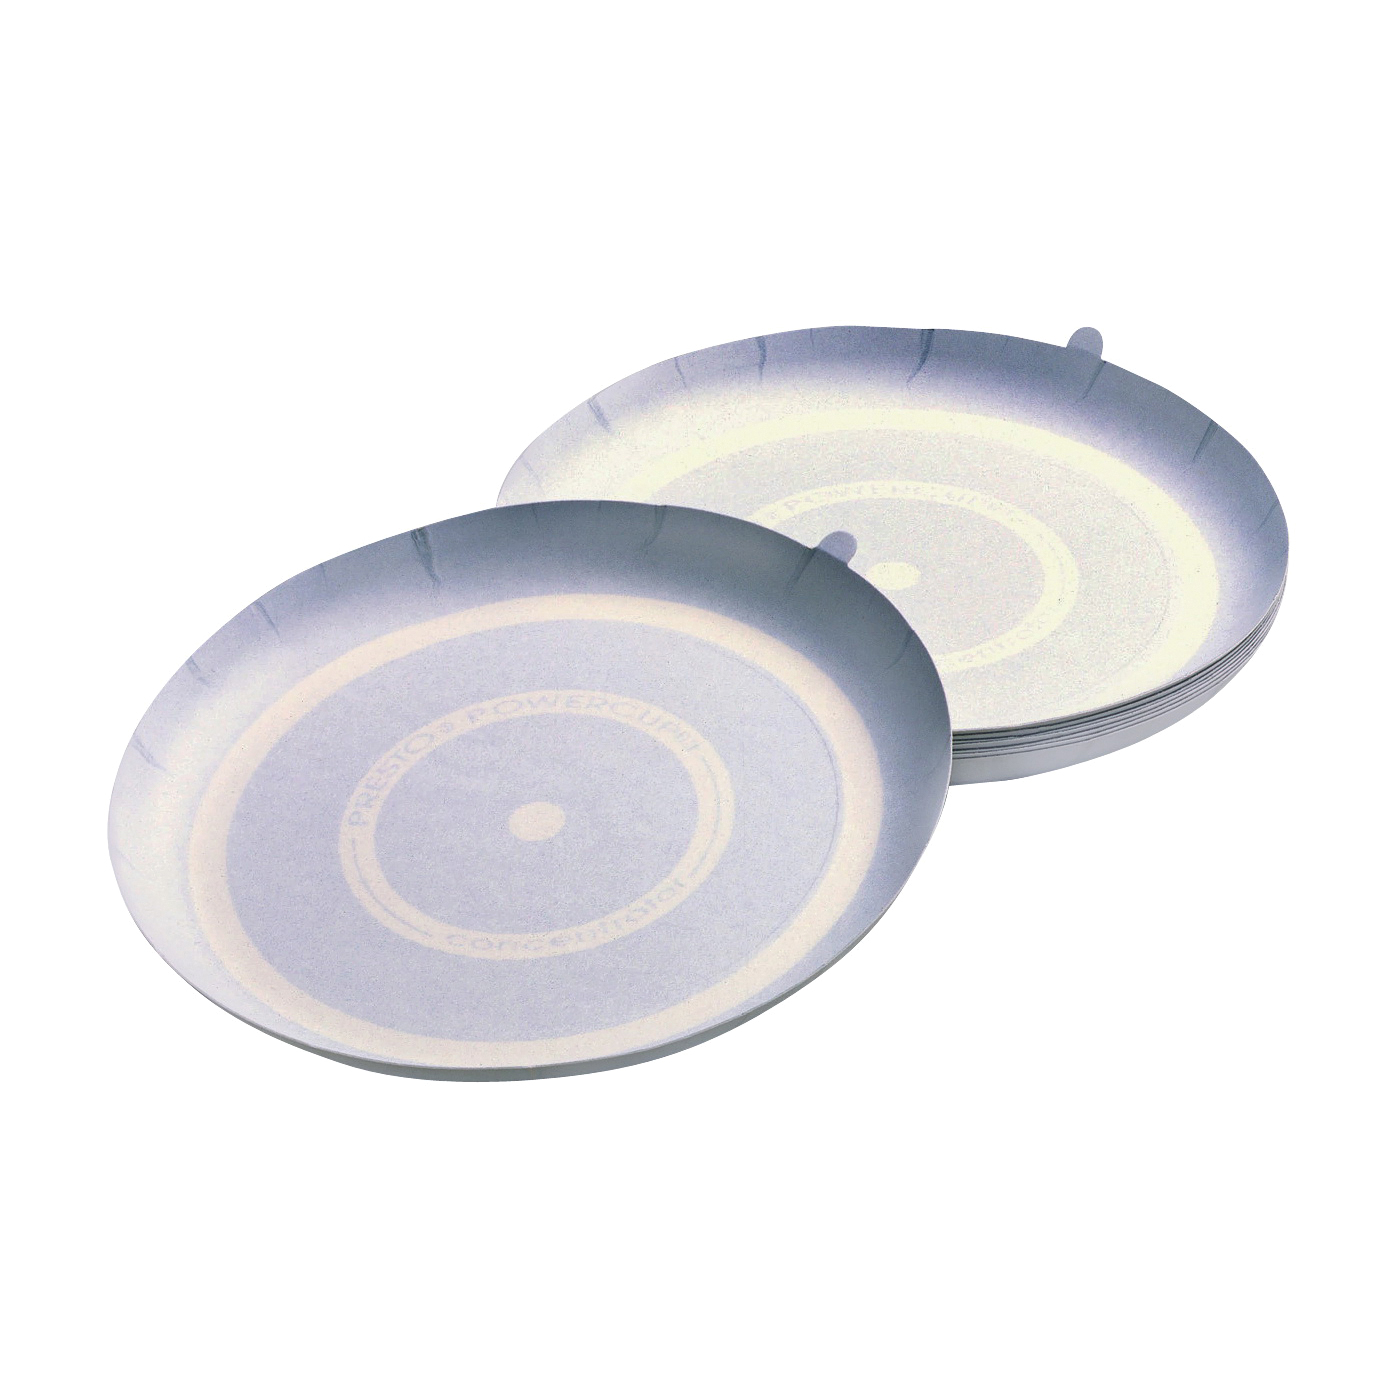 Picture of NATIONAL PRESTO 09964 Microwave Concentrator